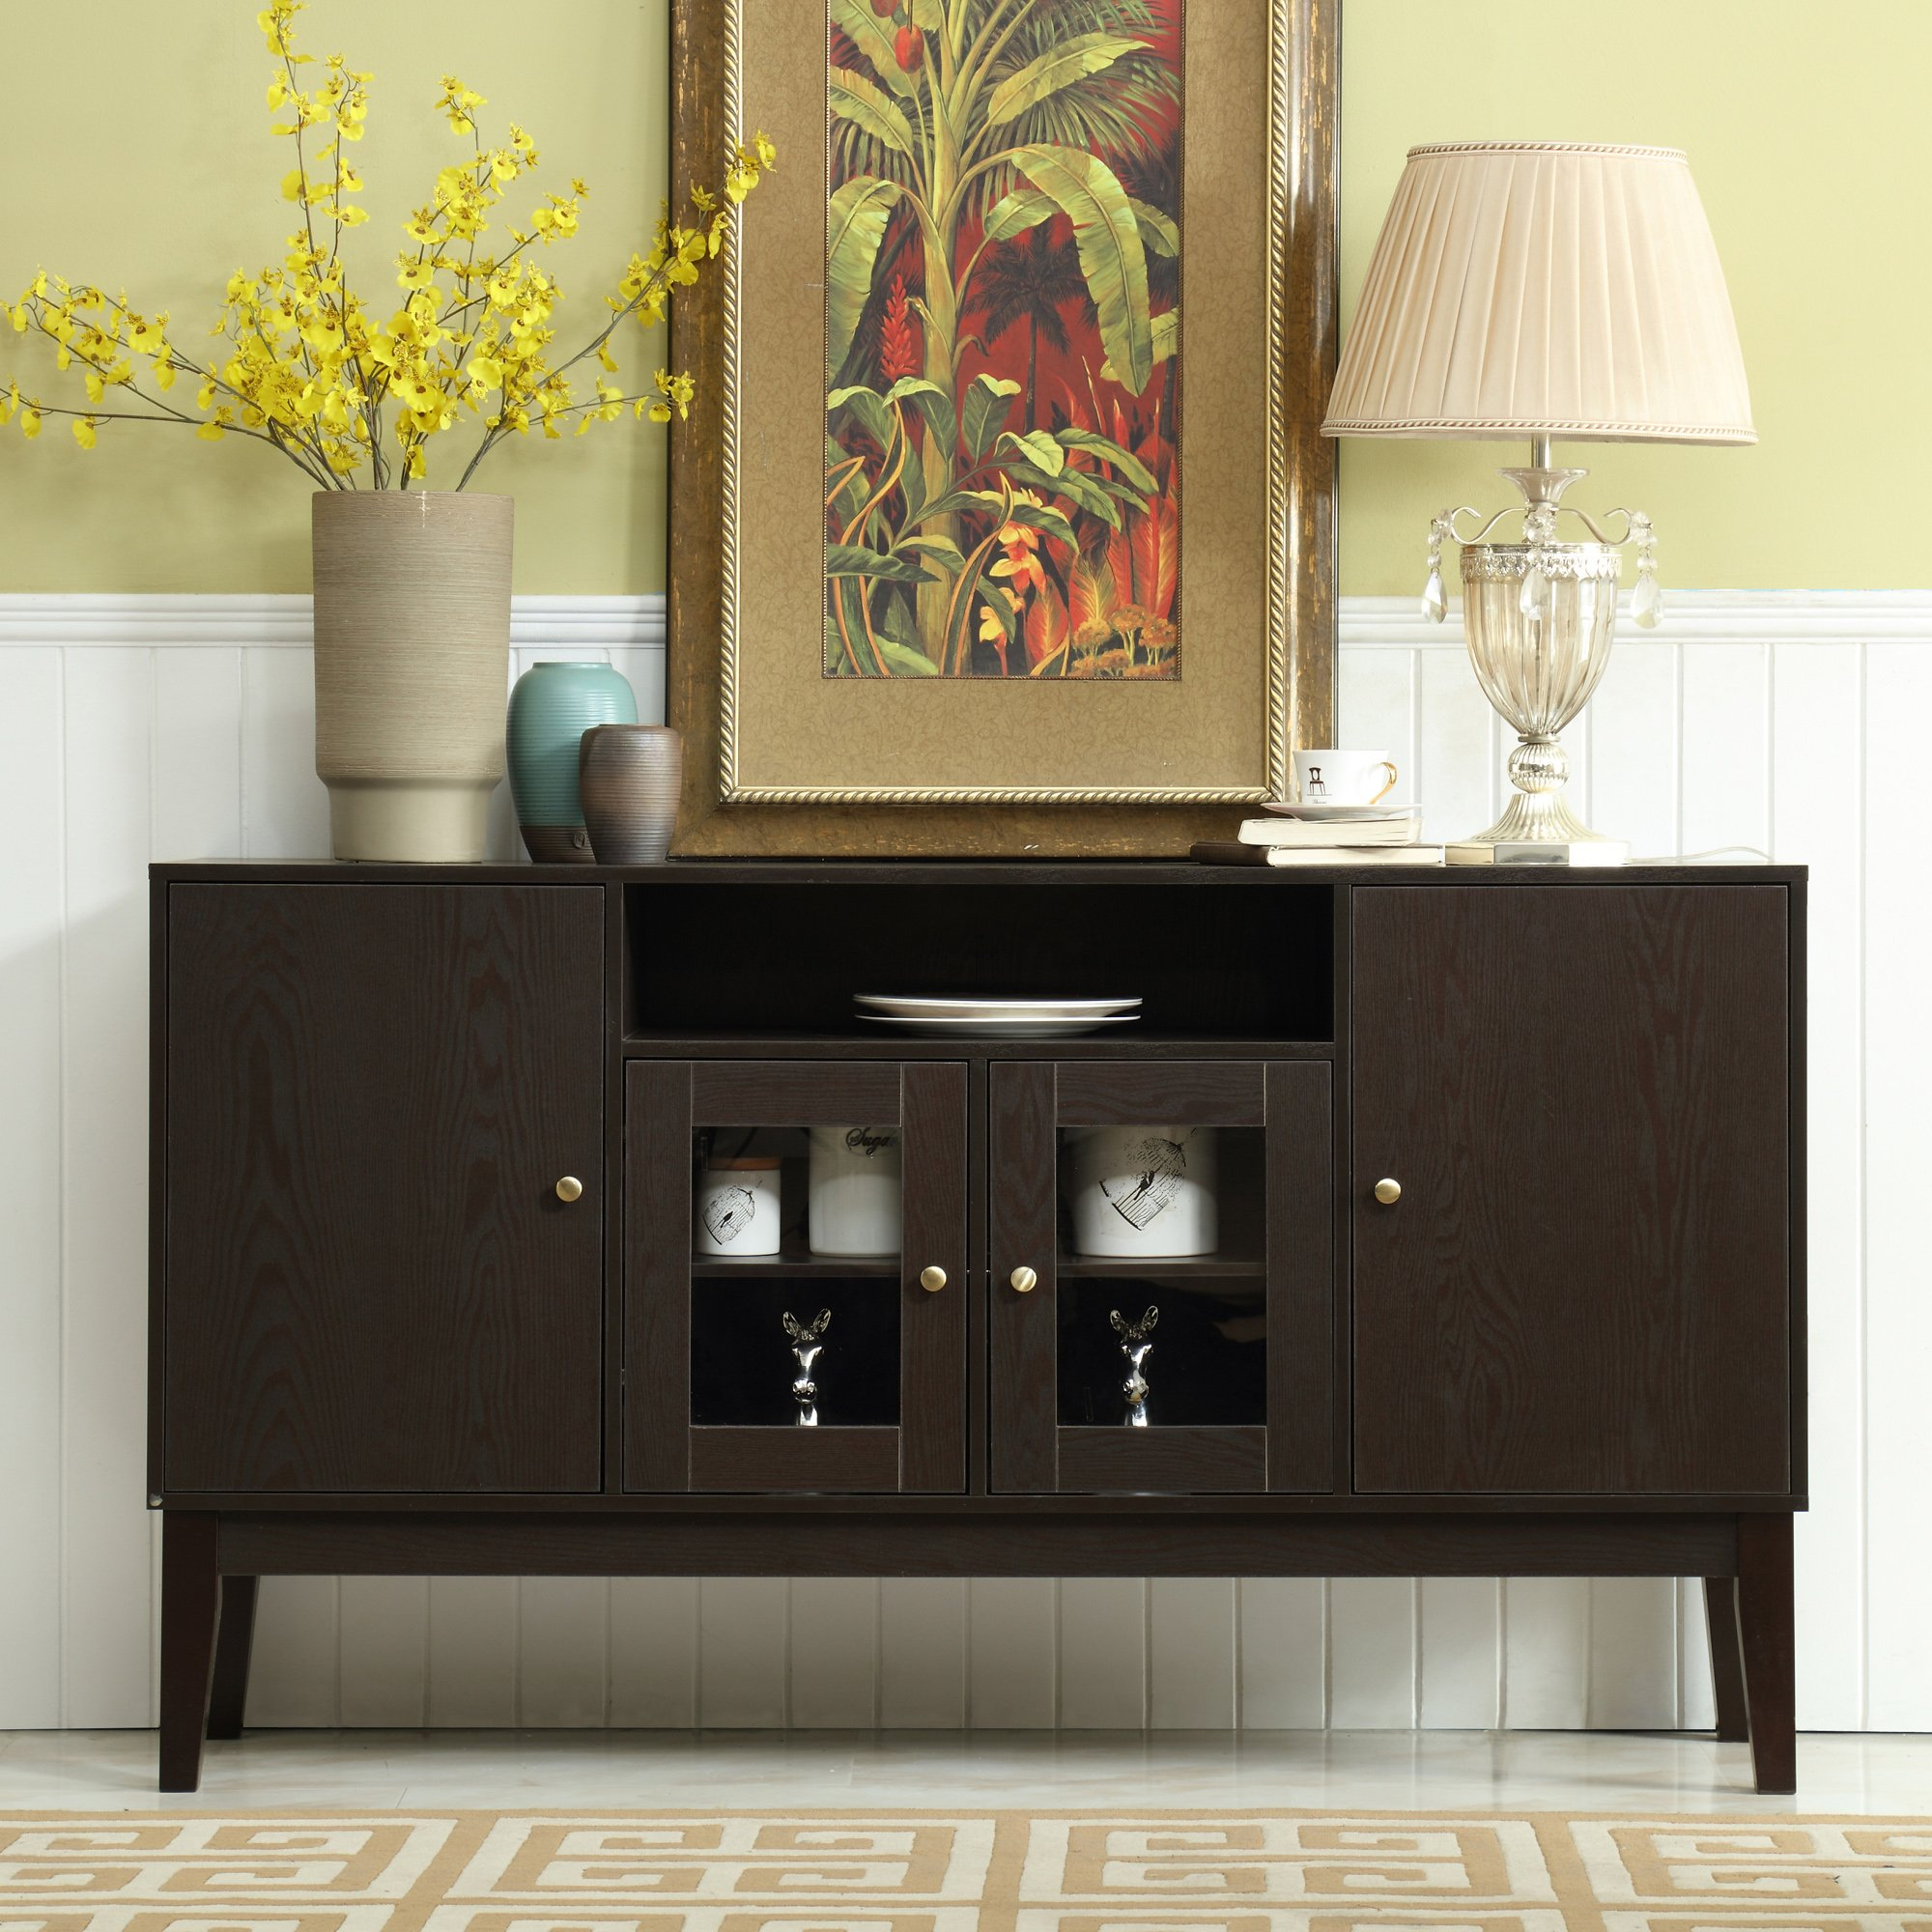 Mixcept 60'' Modern Solid Wood Sideboard Buffet Table Storage Cabinet Tall Console Table with 4 Doors, Espresso by Mixcept